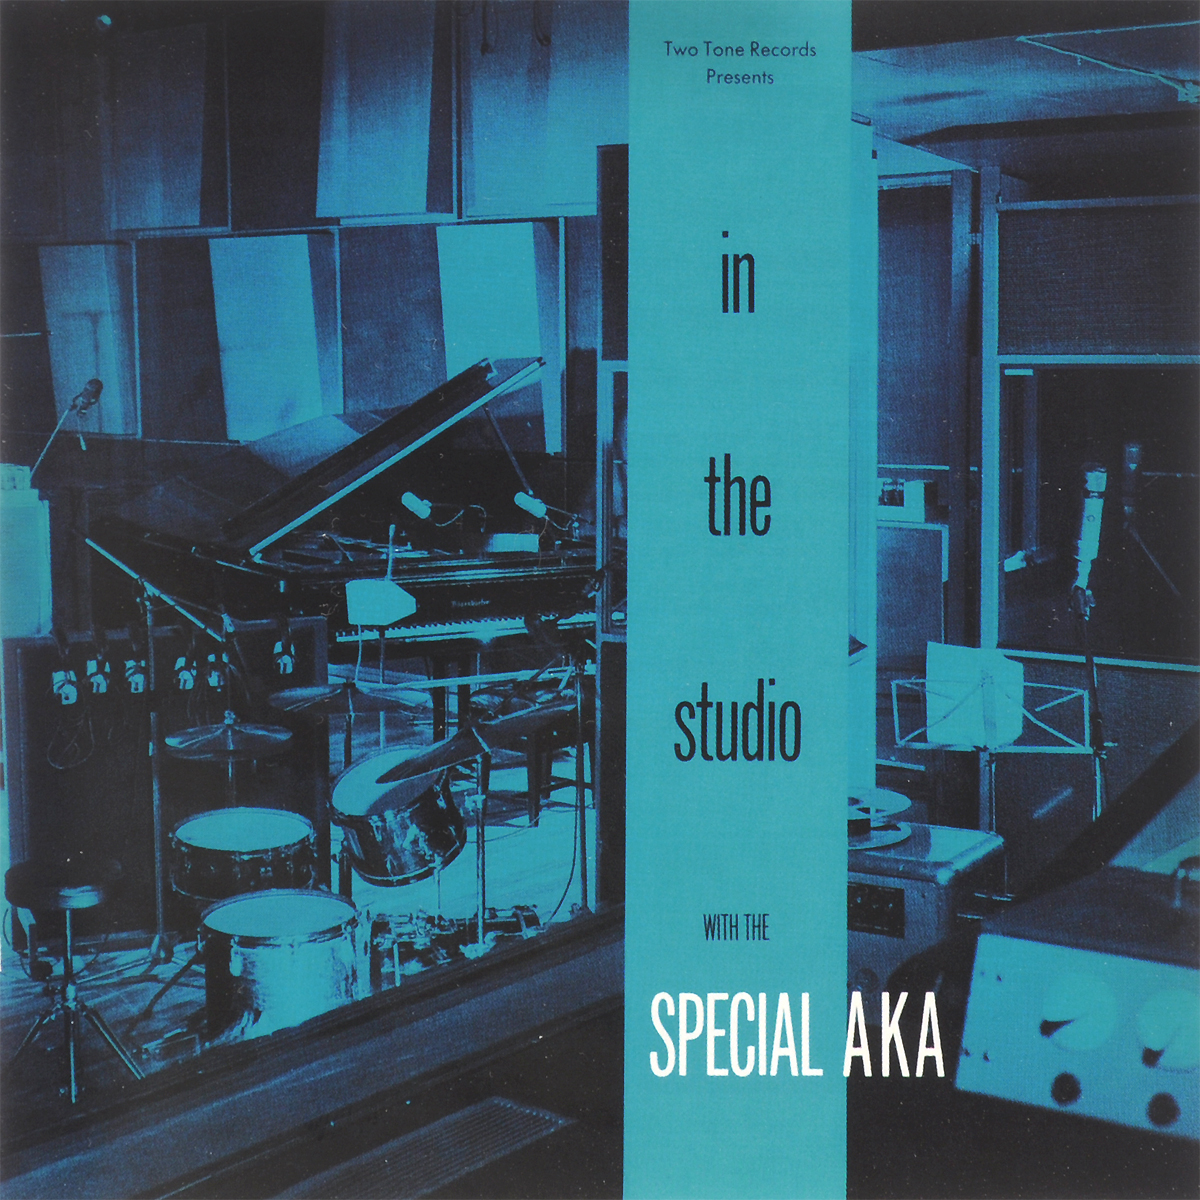 The Specials A. K. A. The Specials A. K. A. In The Studio